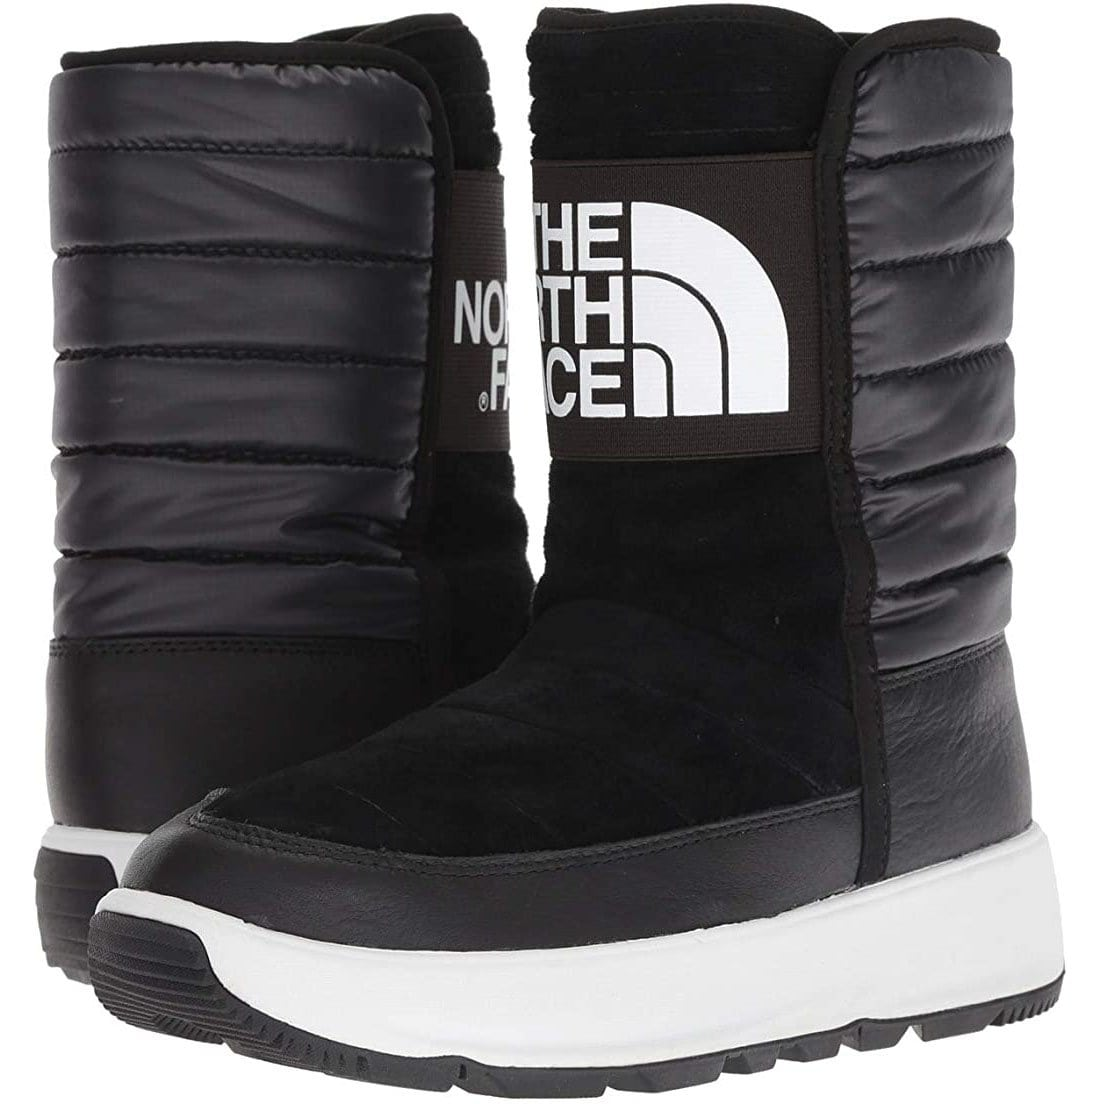 The Ozone Park is a sleeker pair of winter snow boots made from waterproof suede with a rich, textured waterproof-leather overlay